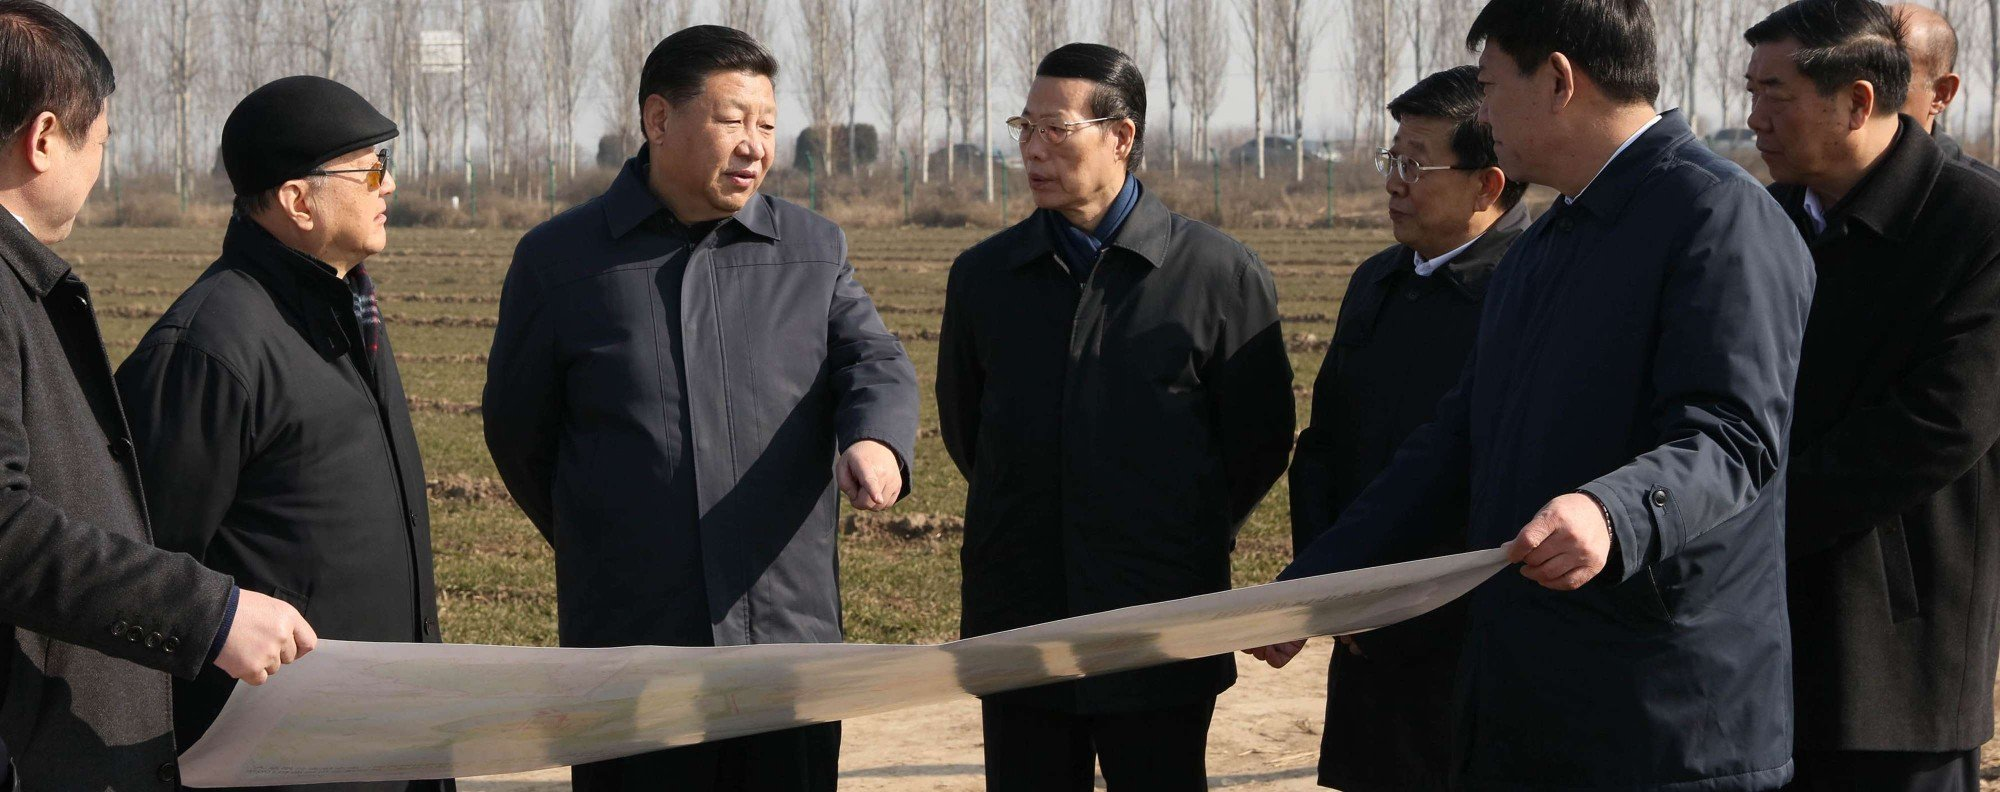 President Xi Jinping inspects plans for the Xiongan New Area. Photo: Xinhua